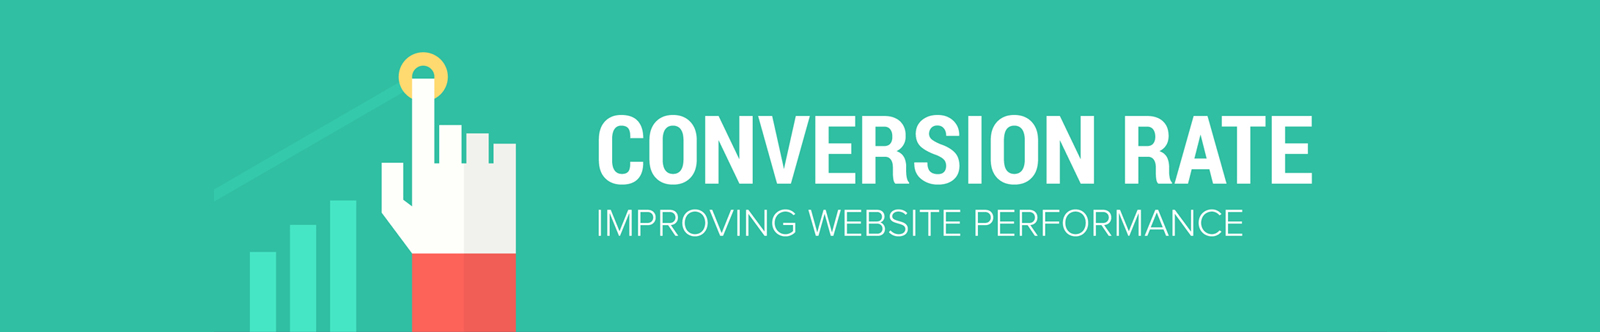 conversion rate optimizatio